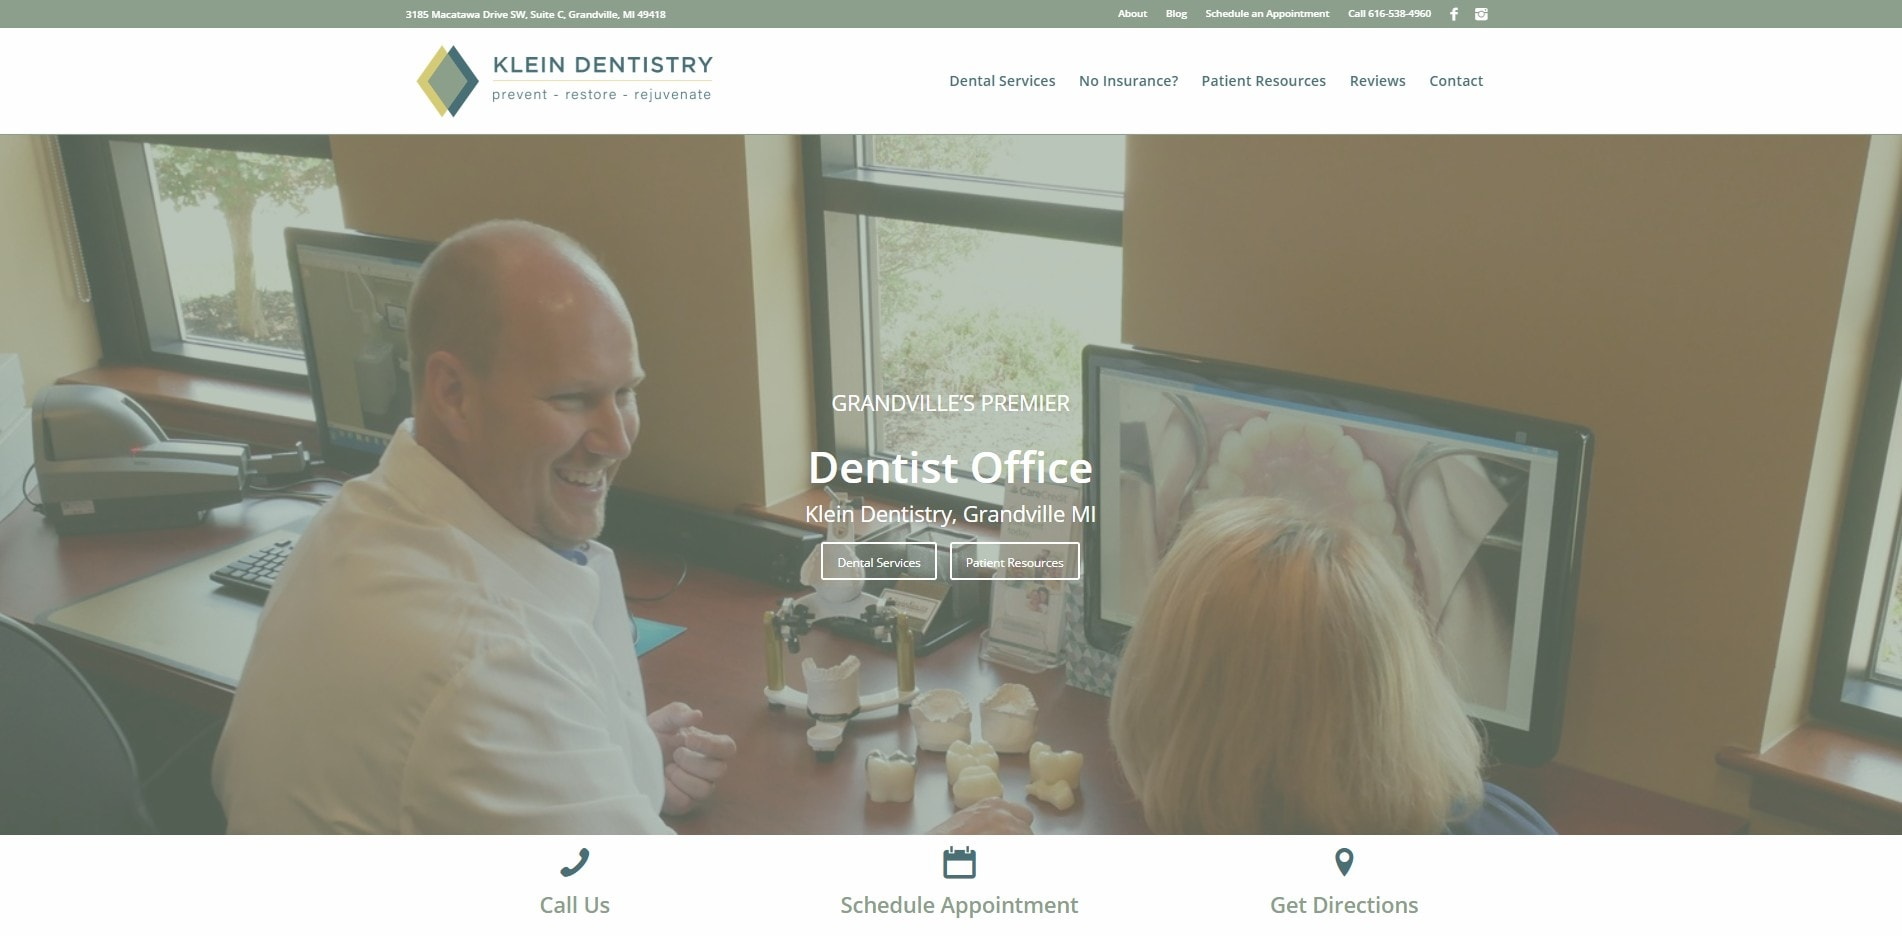 Klein Dentistry, Website Design and Digital Marketing by MoxieMen, Inc., a marketing agency in Grand Rapids MI - MoxieMenInc.com